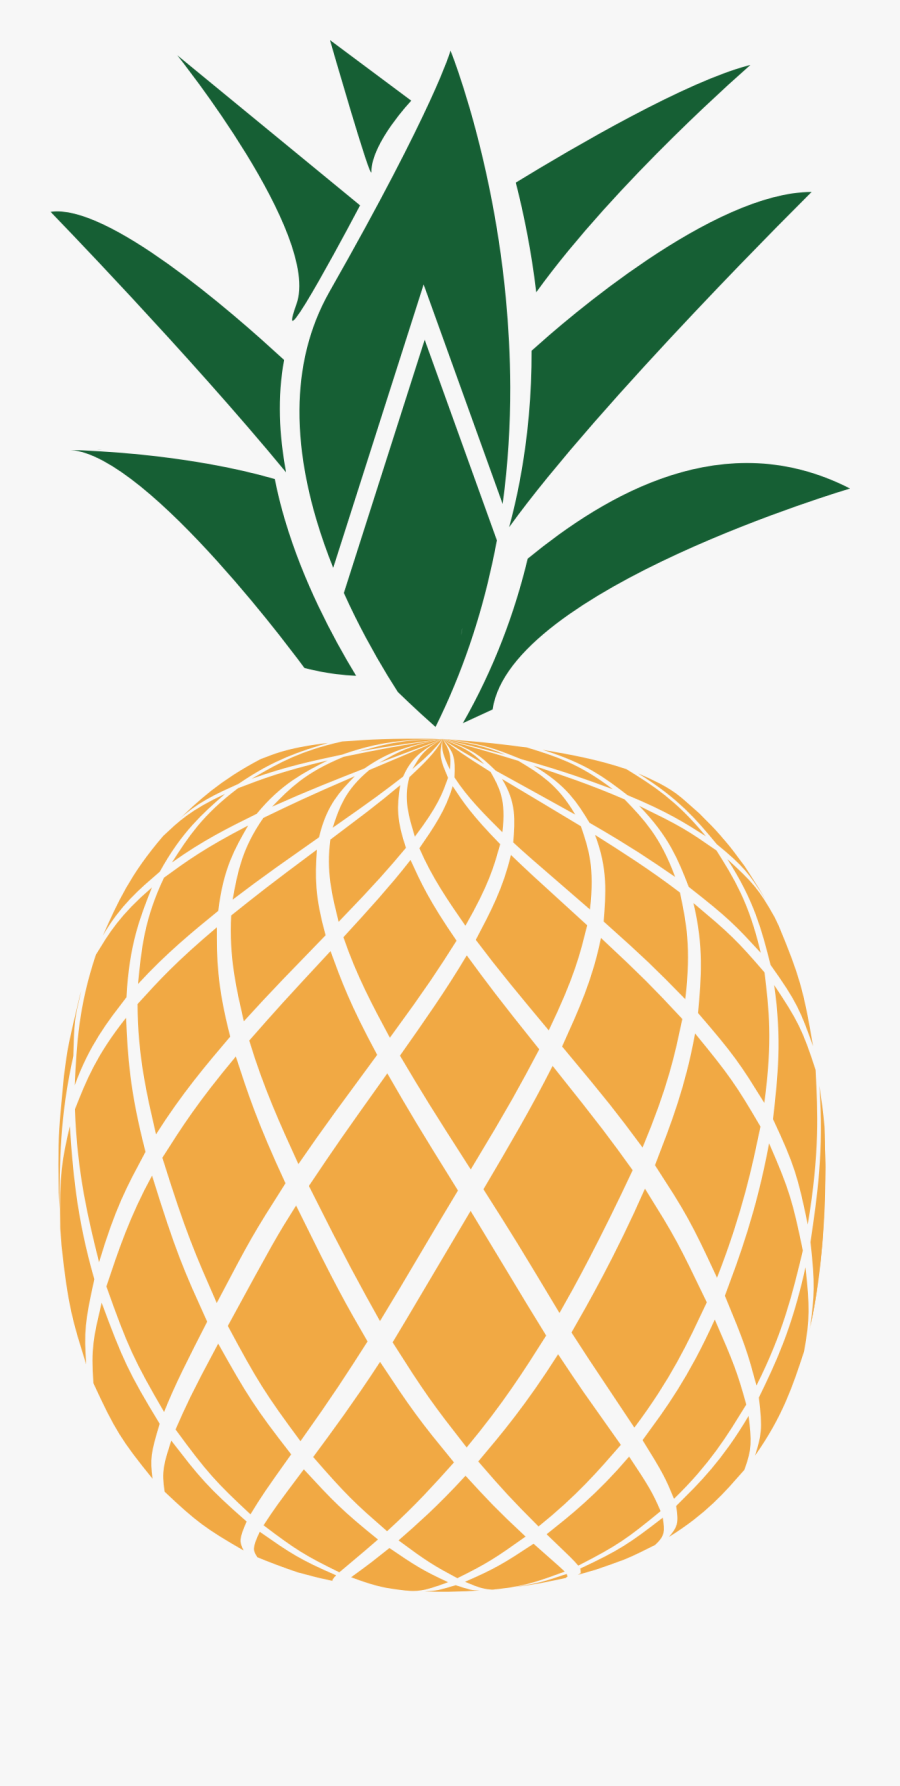 Free Download Pineapple Vector Clipart Pineapple Clip - Black And White Pineapple Clipart, Transparent Clipart